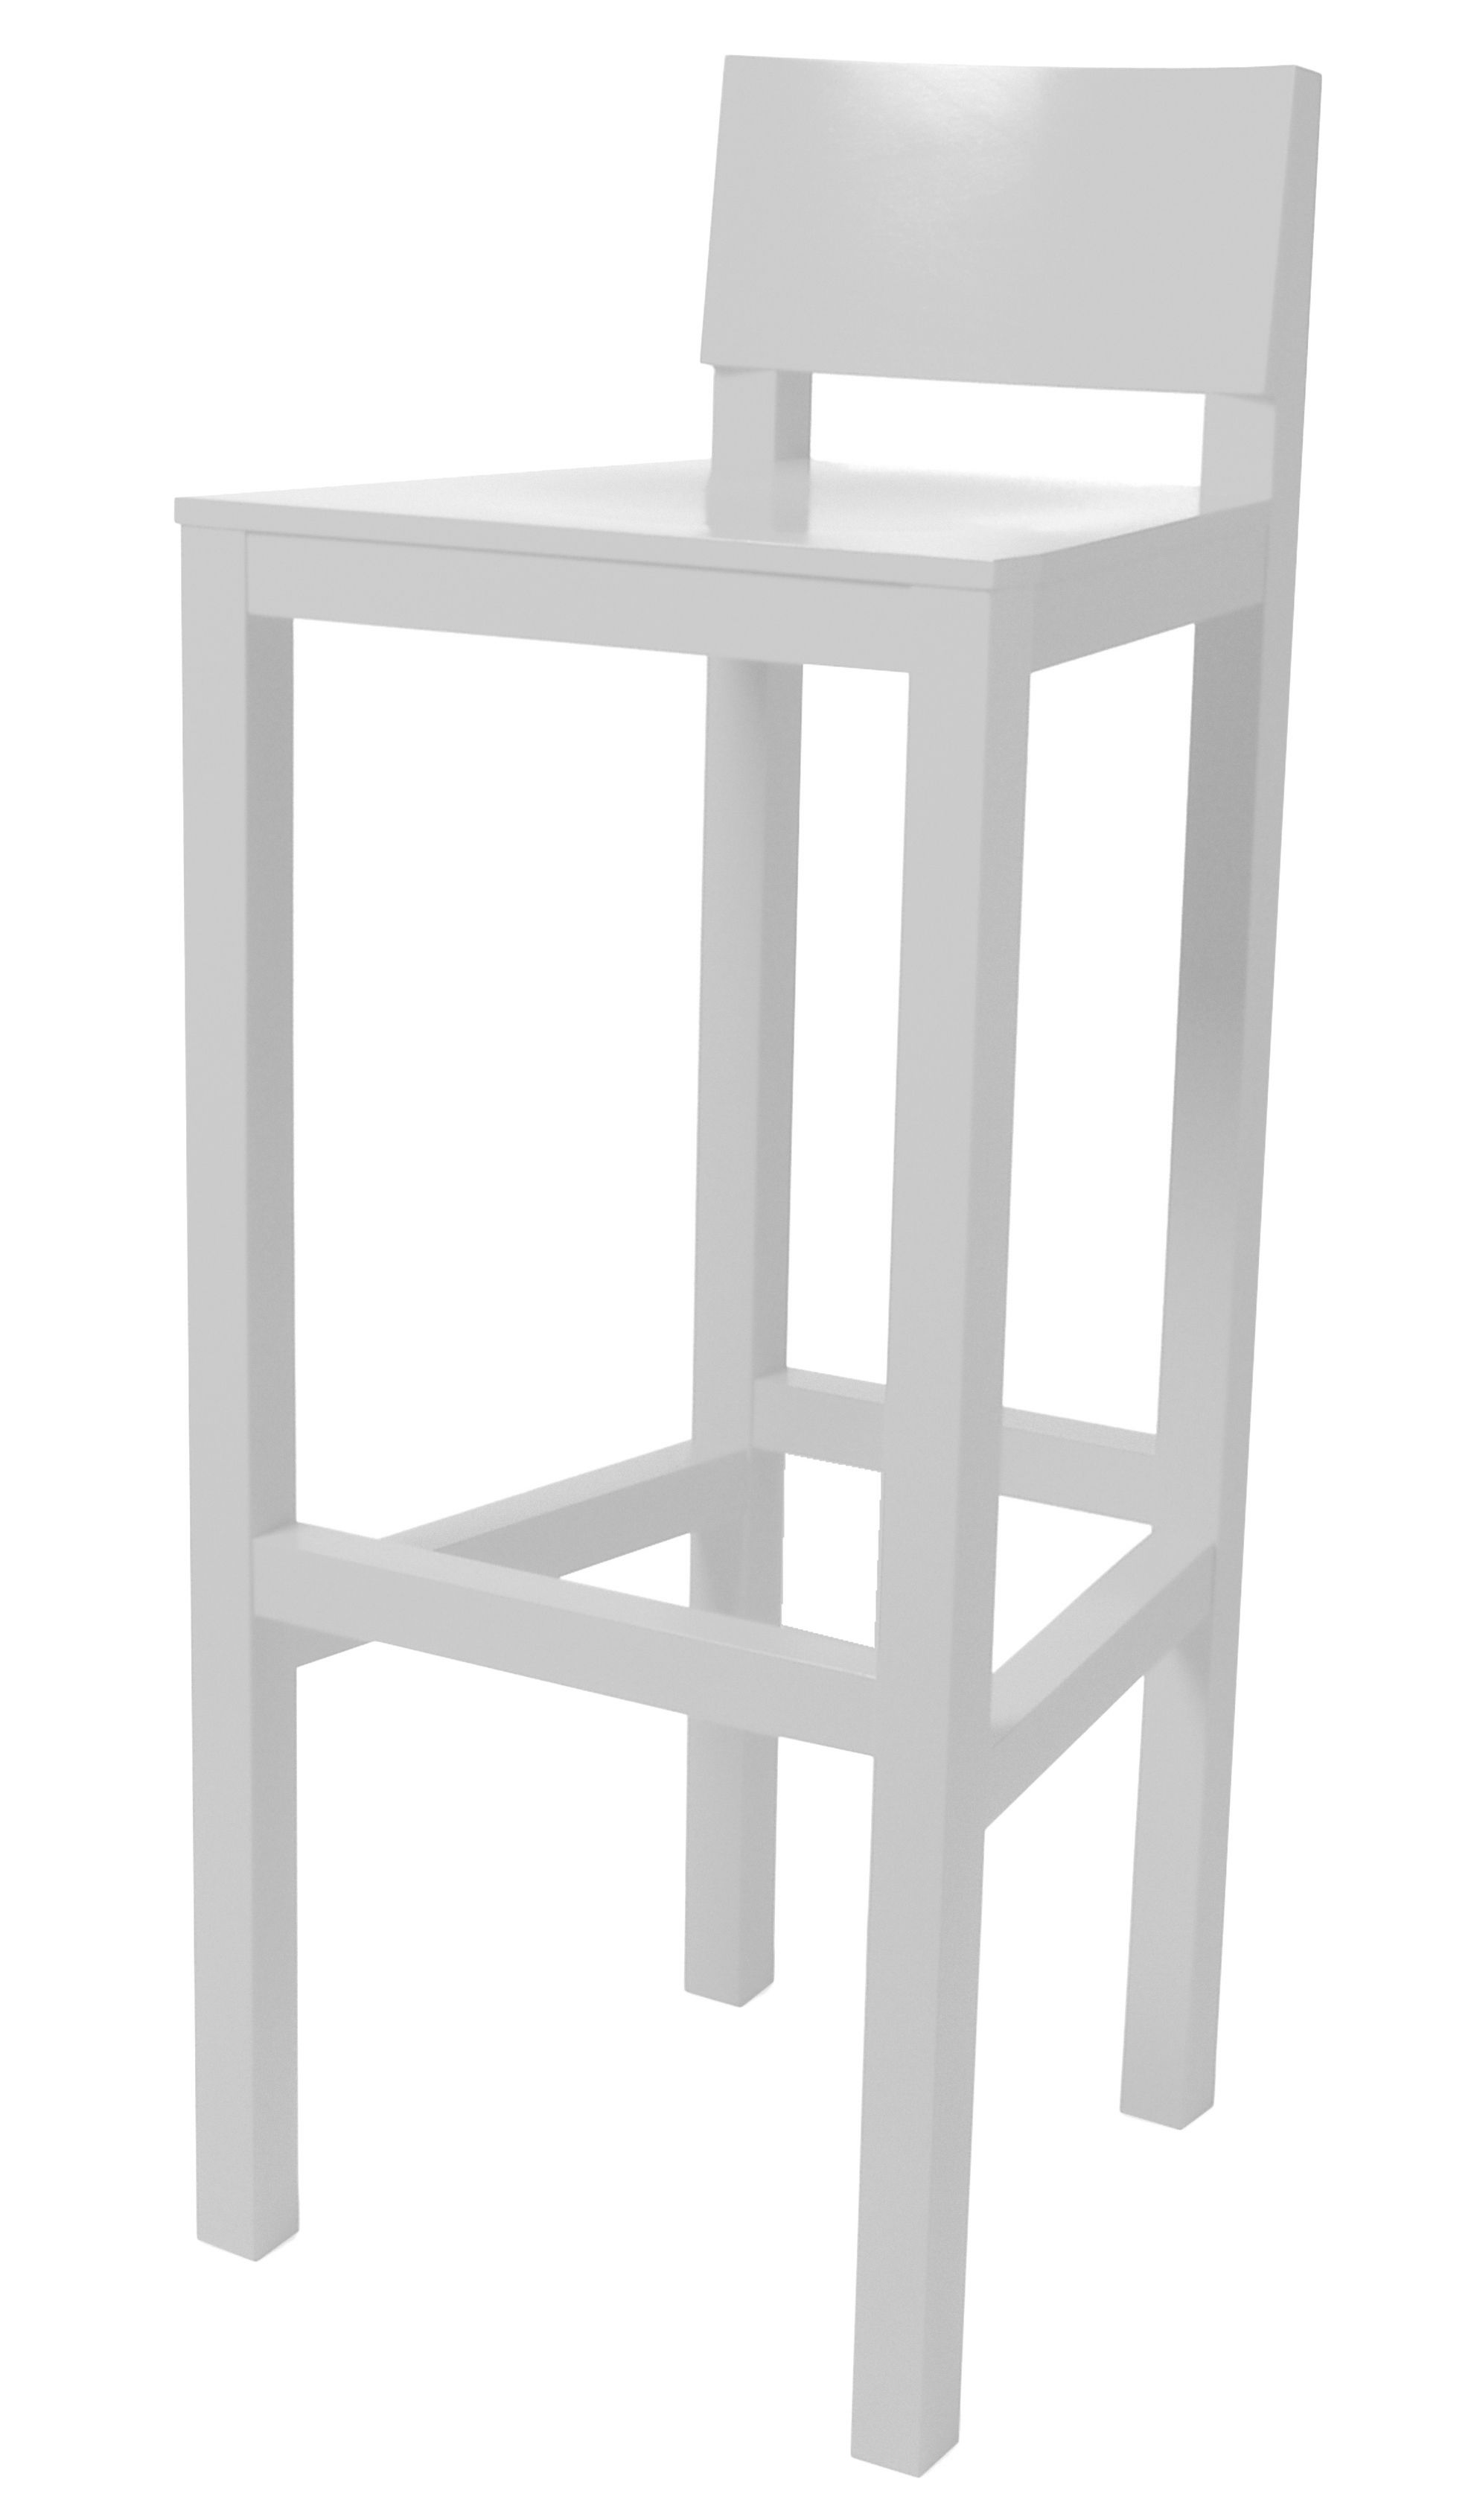 tabouret de bar avl h 80 cm bois blanc moooi. Black Bedroom Furniture Sets. Home Design Ideas